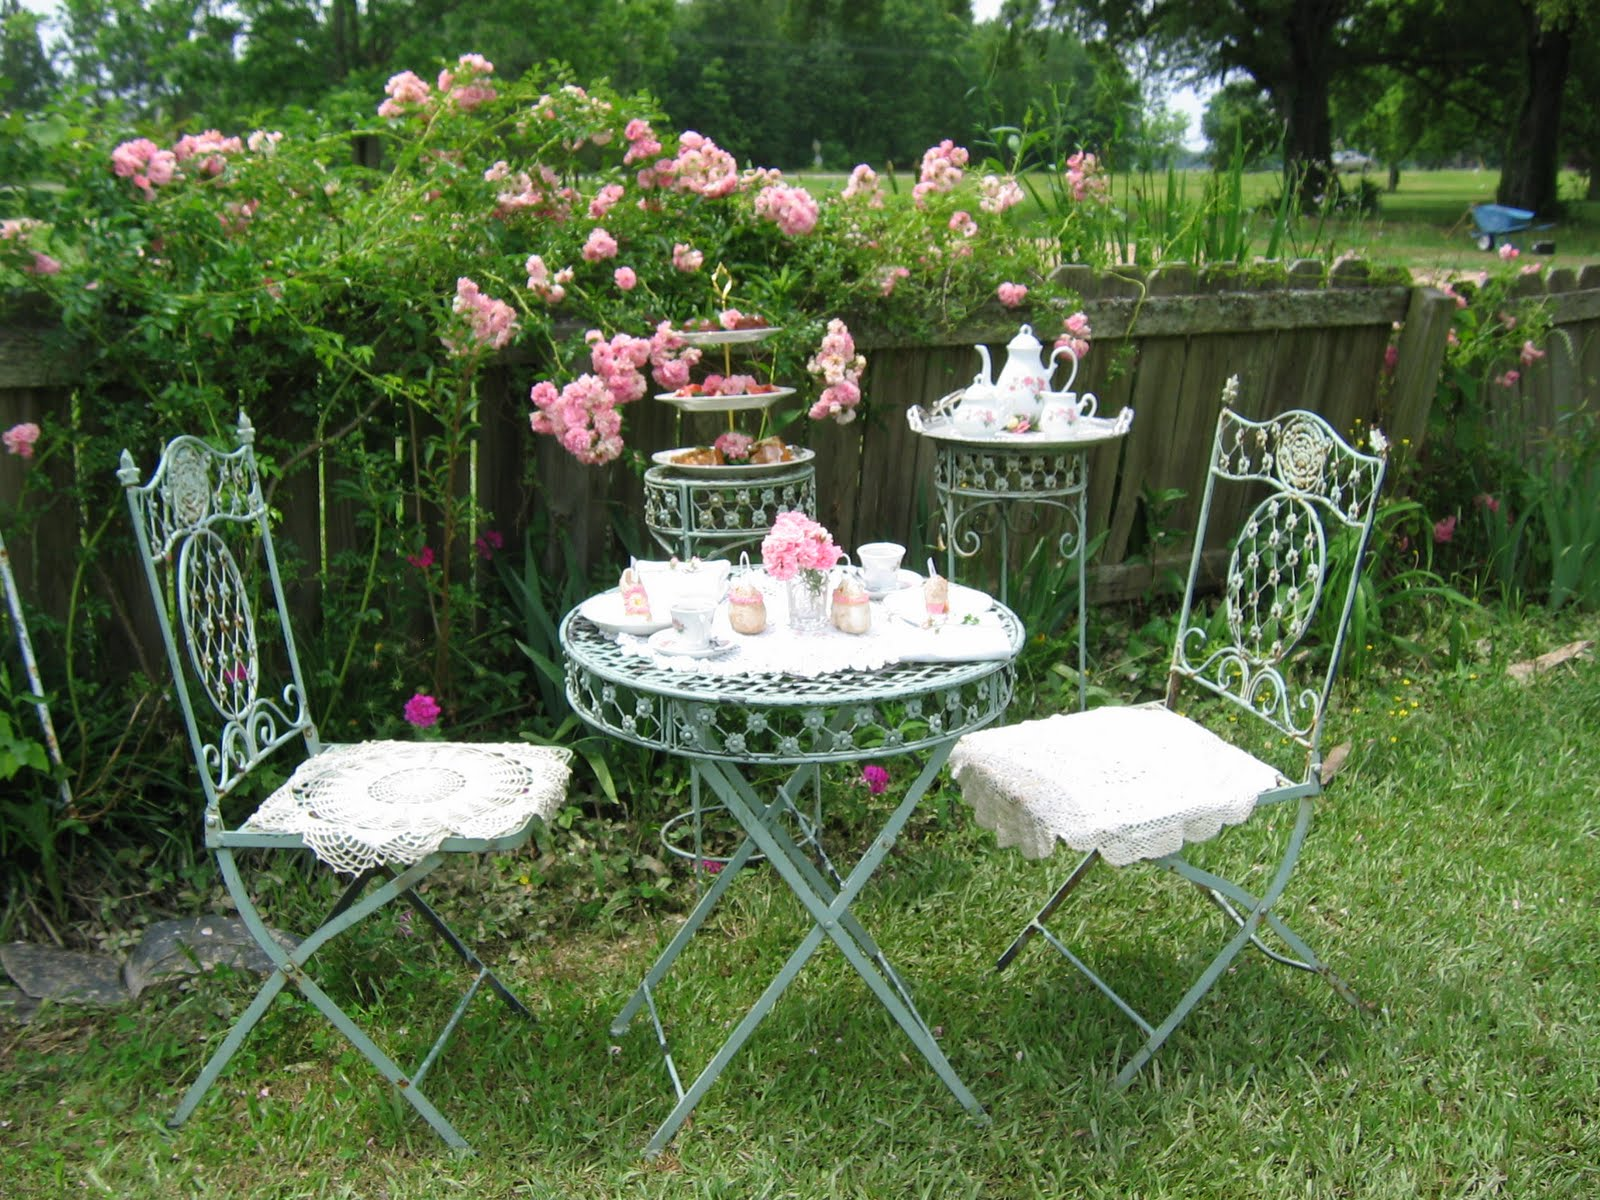 Every garden has a story and this one is of mine zameen blog for Garden tea party table decorations